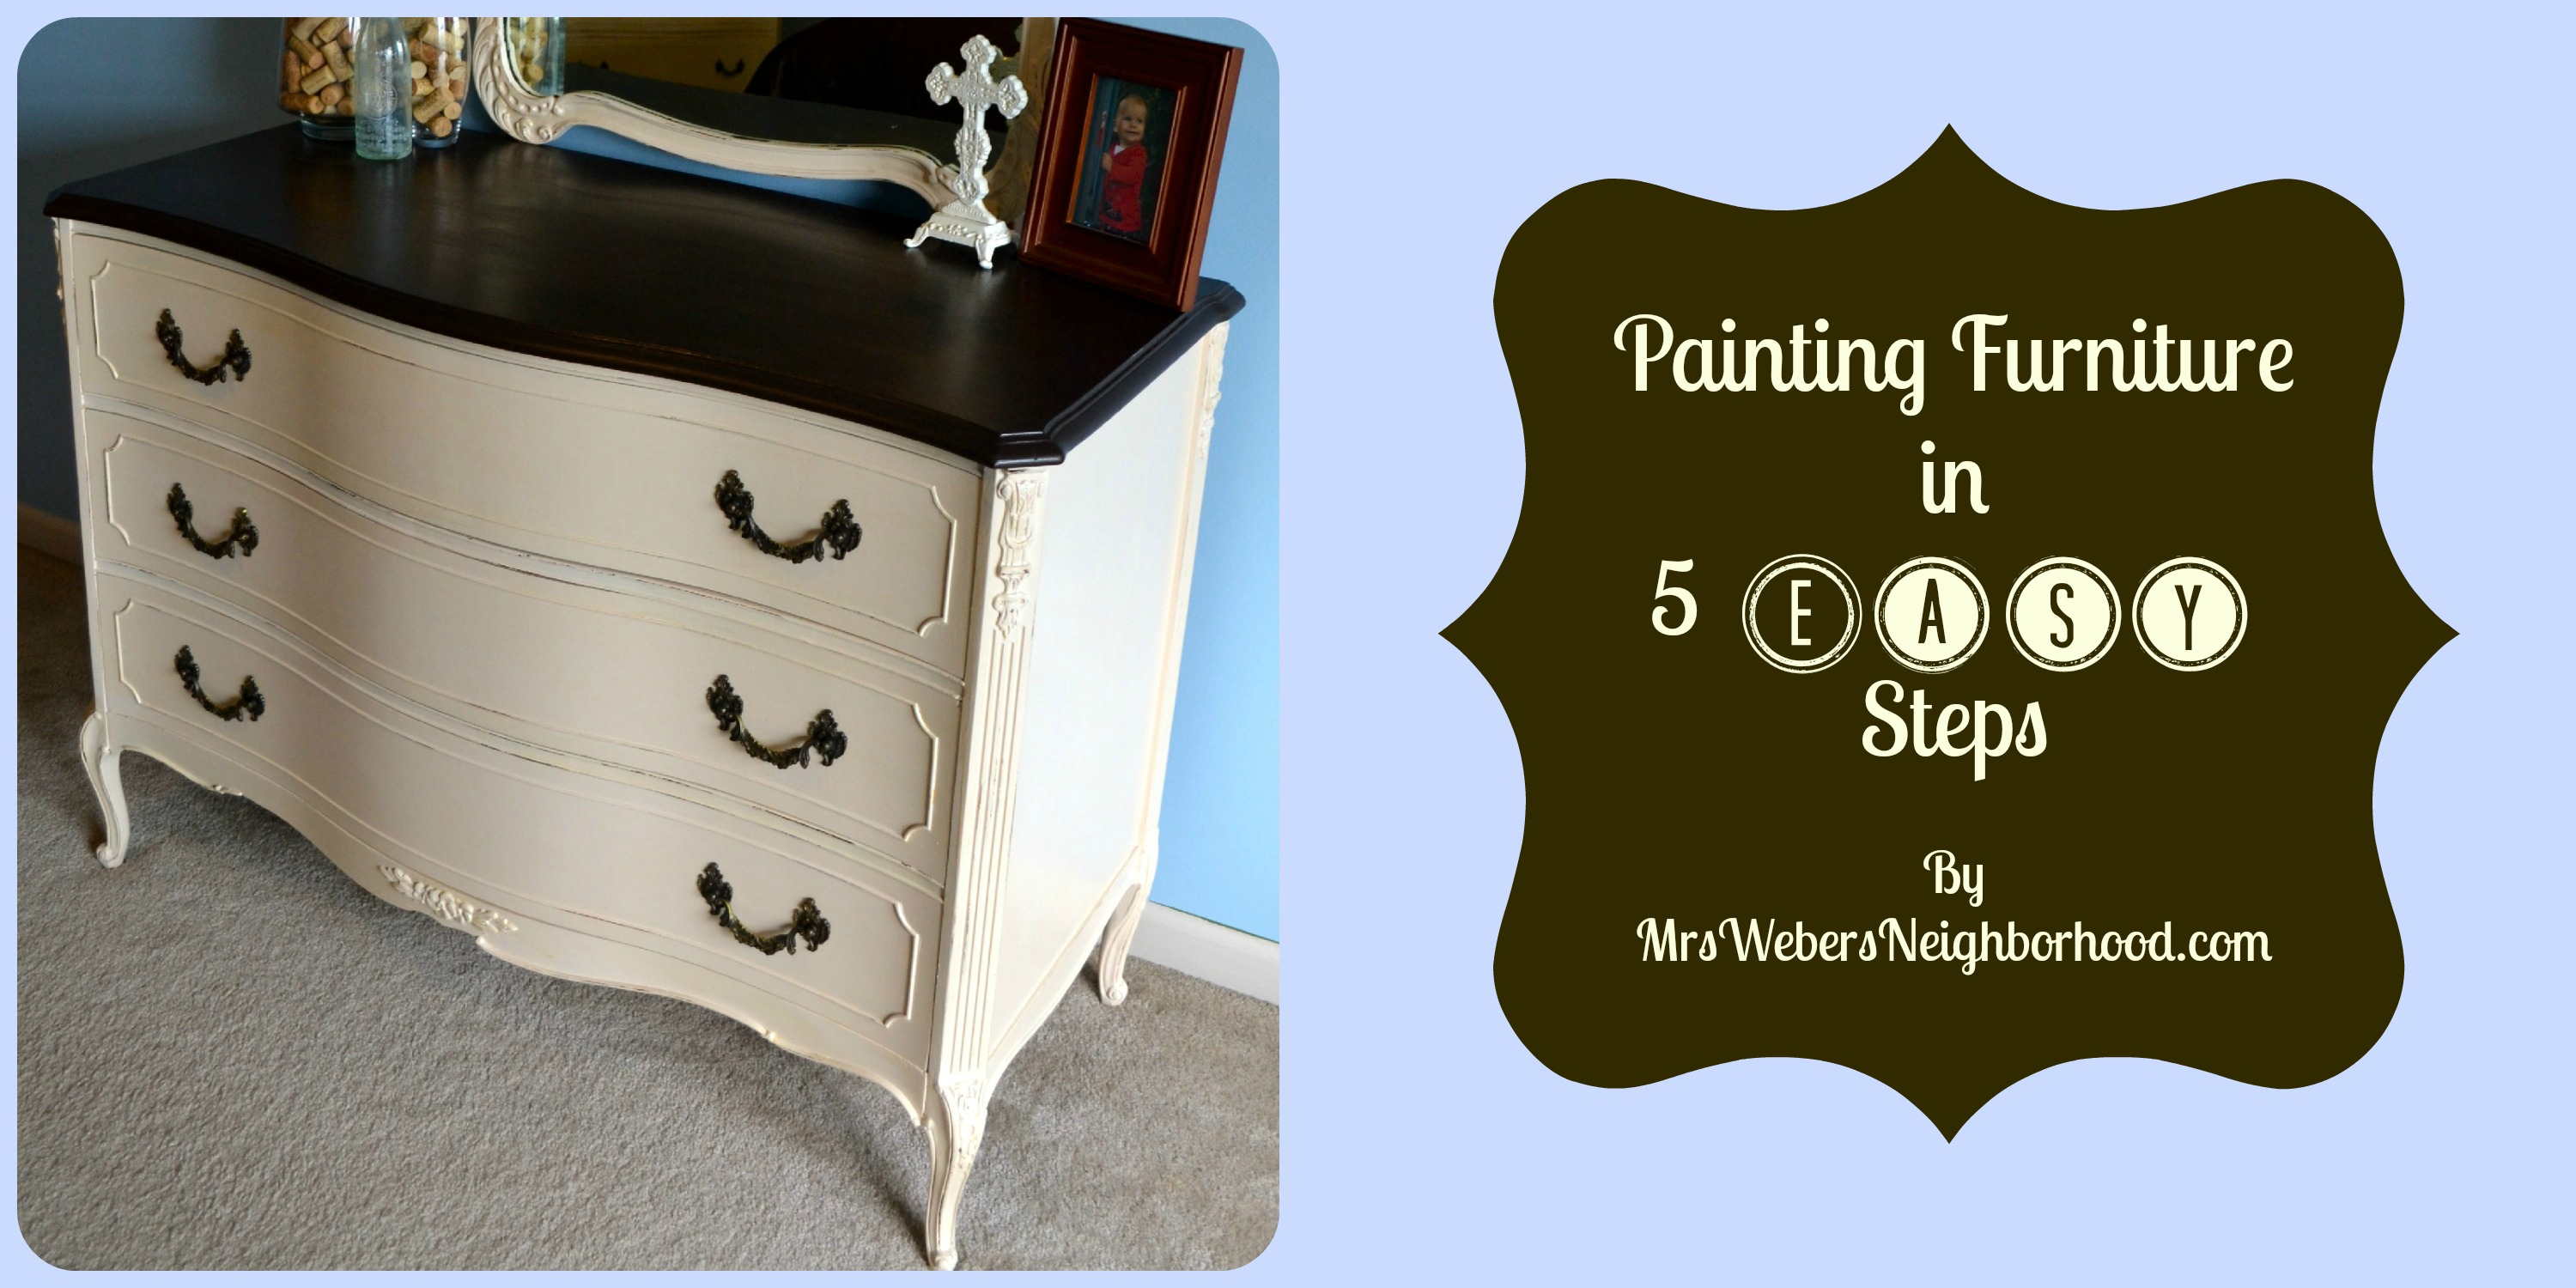 Painting A Bedroom My 350 Bedroom Set Painting Furniture In 5 Easy Steps Mrs